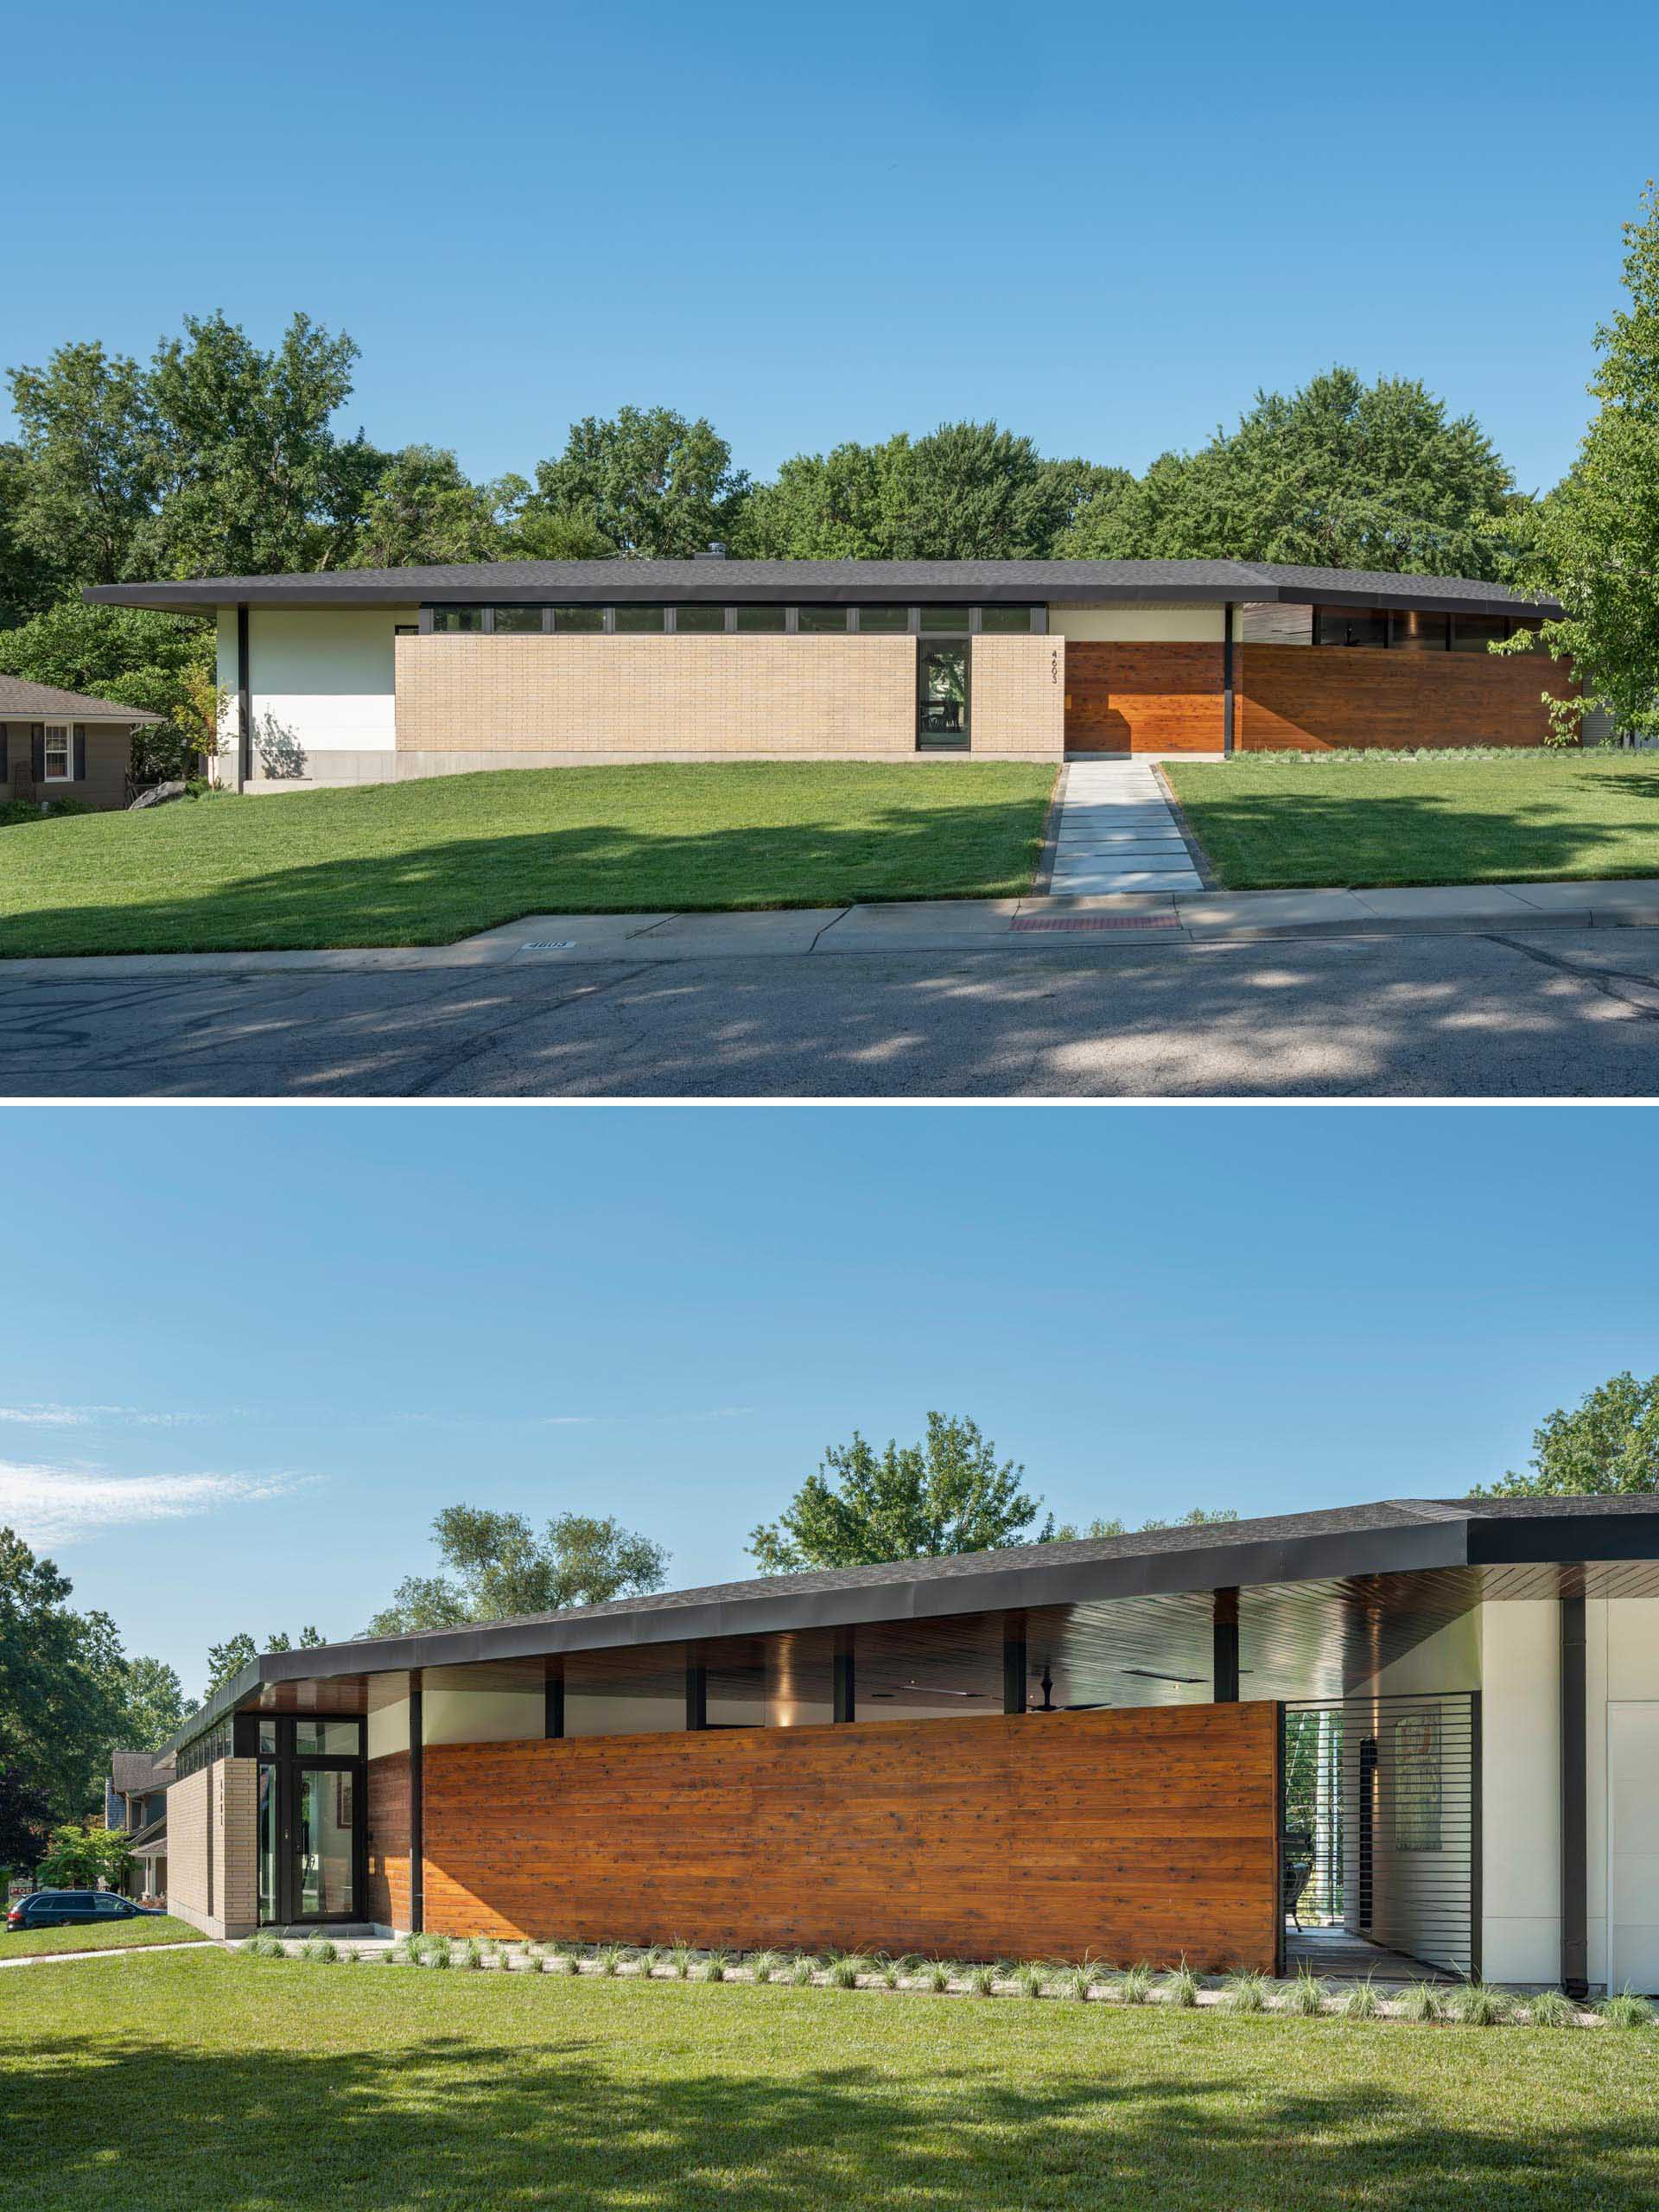 The exterior of a mid-century modern inspired house features materials like light buff brick, white stucco, and exposed concrete, all of which are accented by stained cedar.